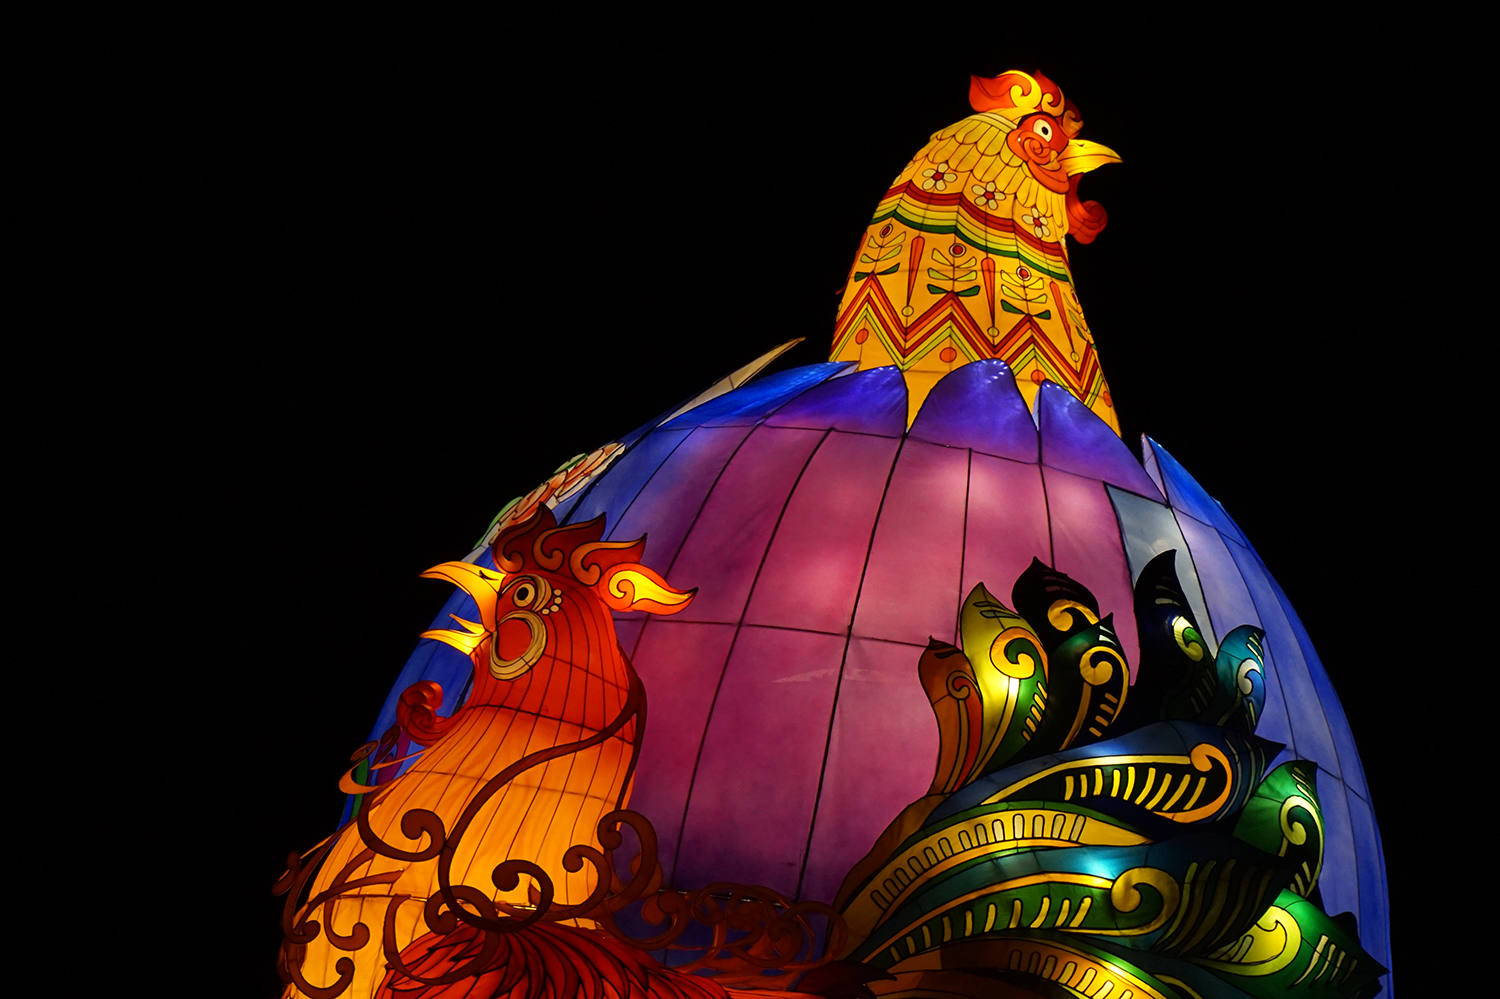 magical_lantern_festival_chiswick_24